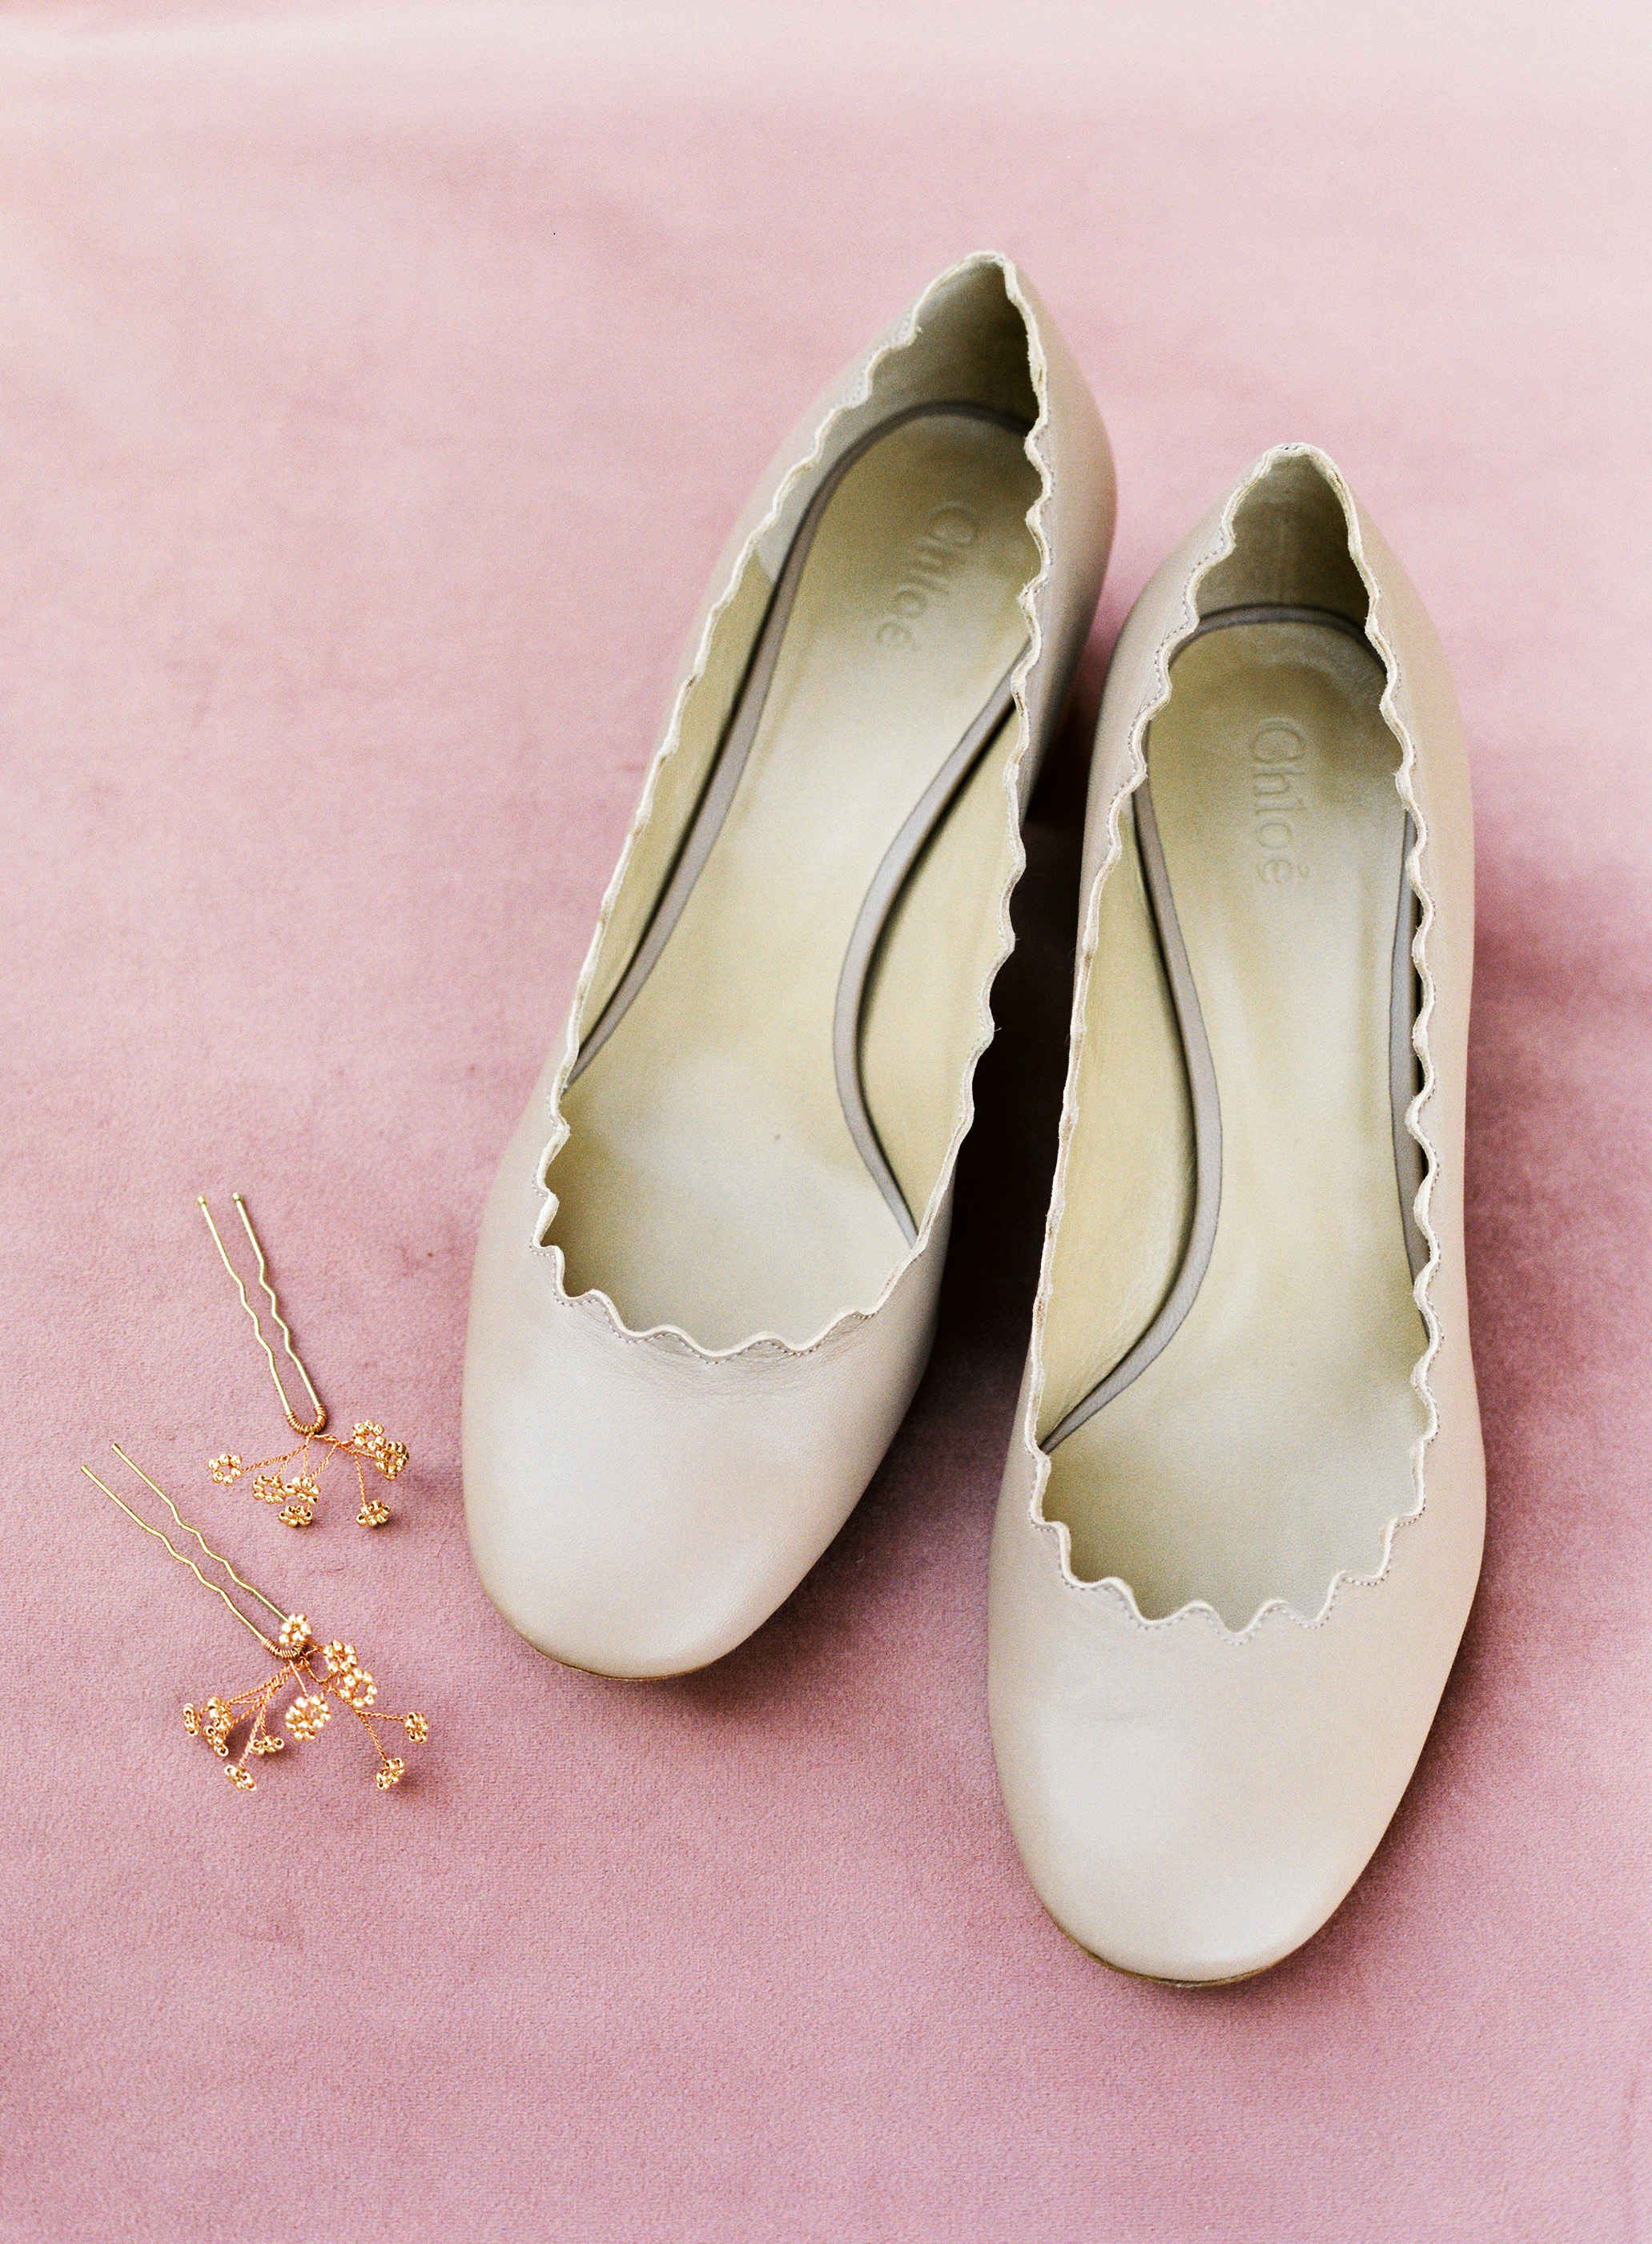 The Best Pairs of Shoes for Your Bridesmaids to Wear on the Wedding Day